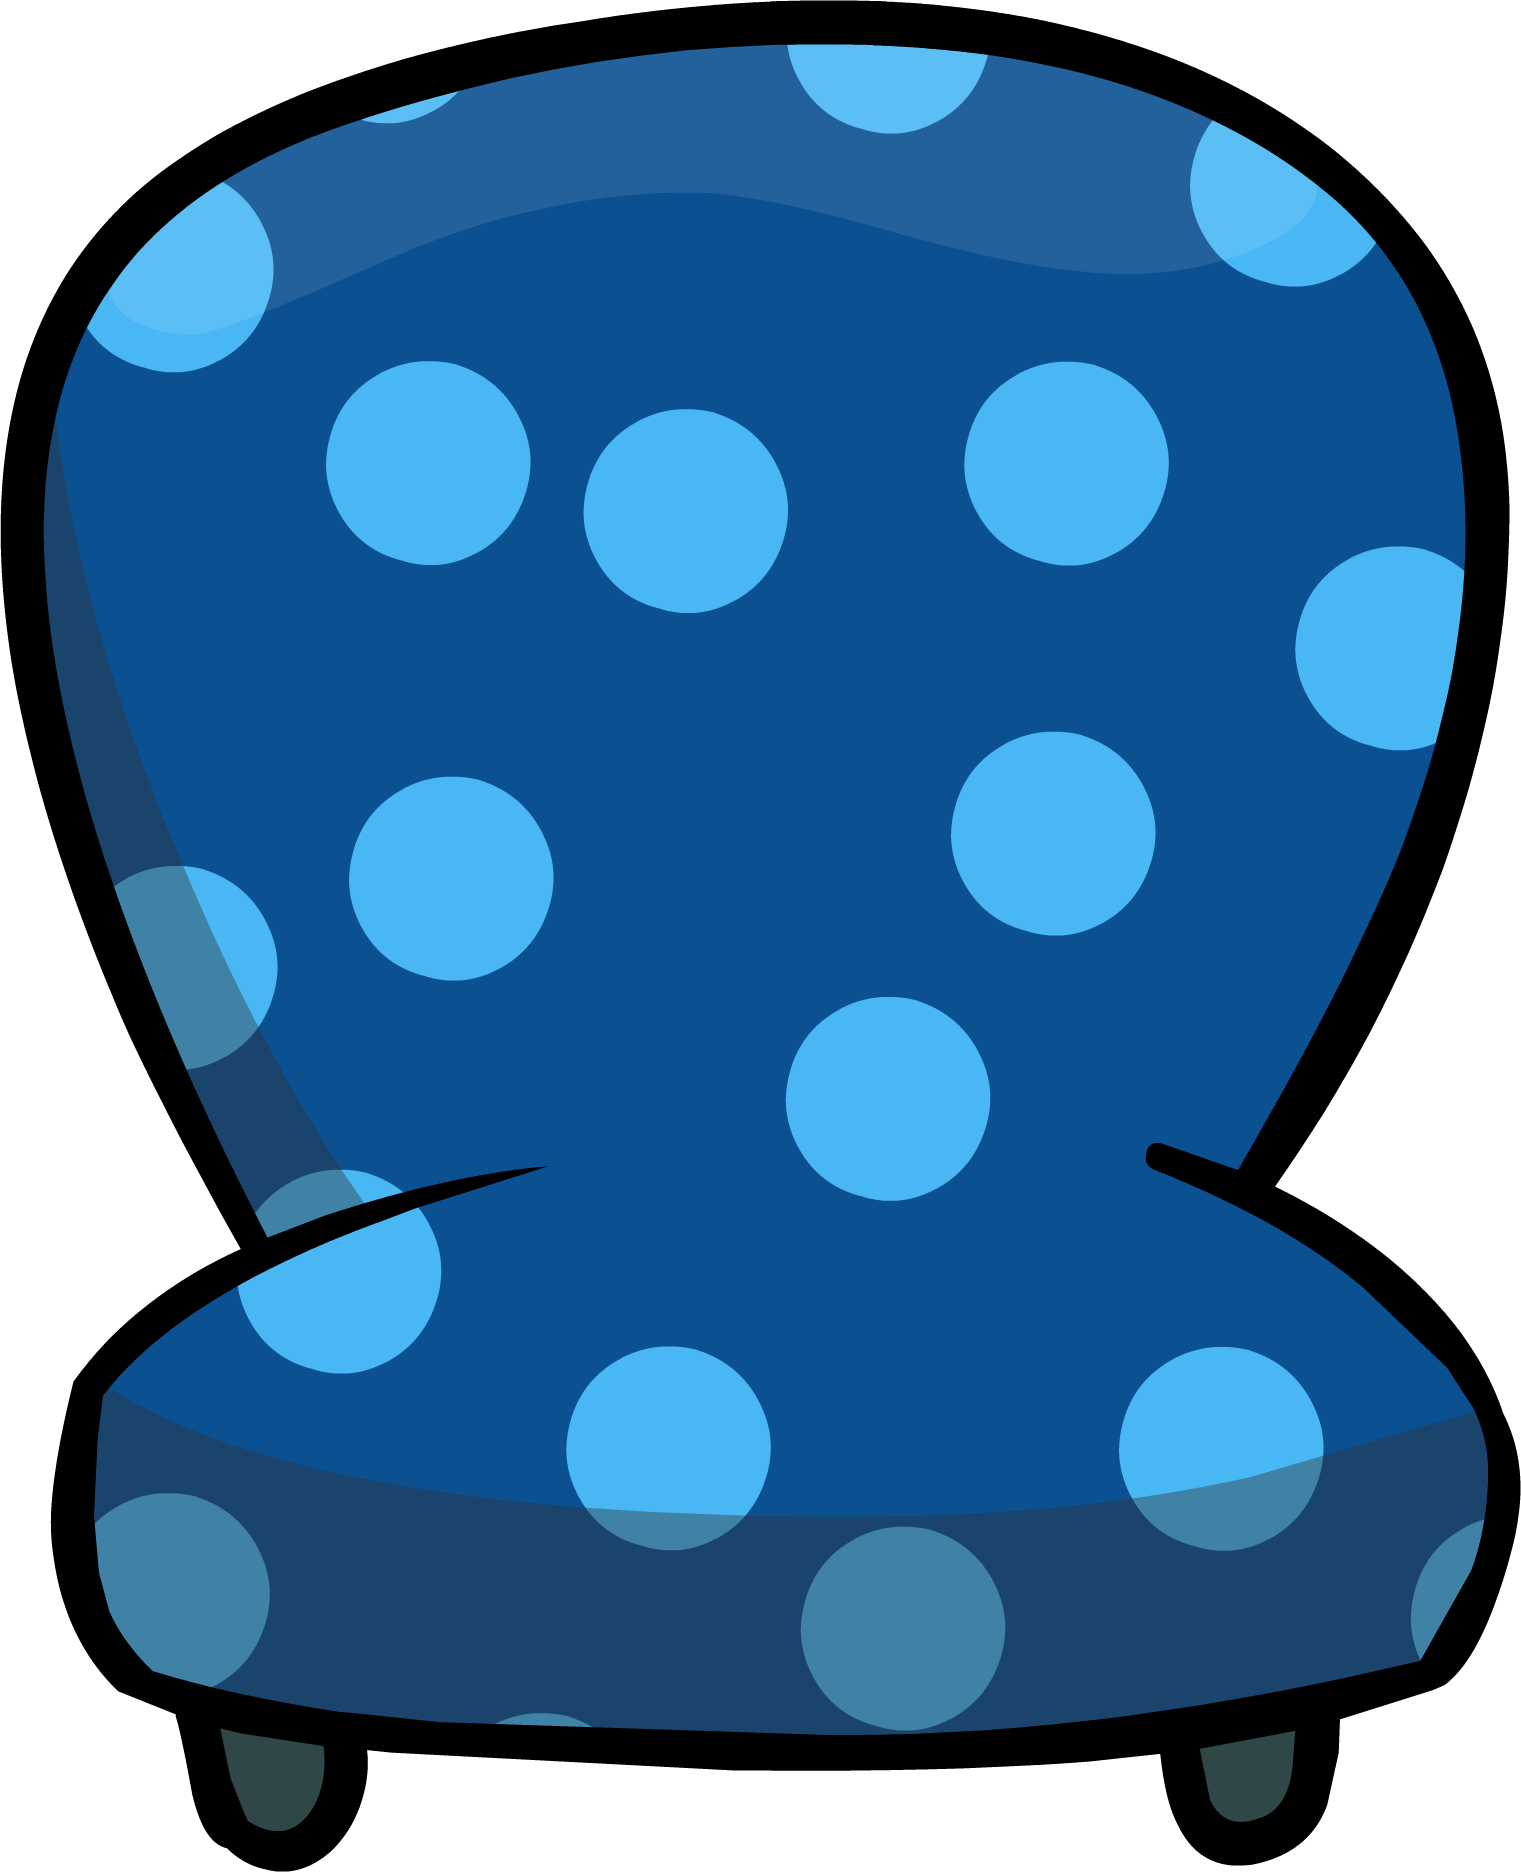 Missions clipart january. Image custom furniture blue